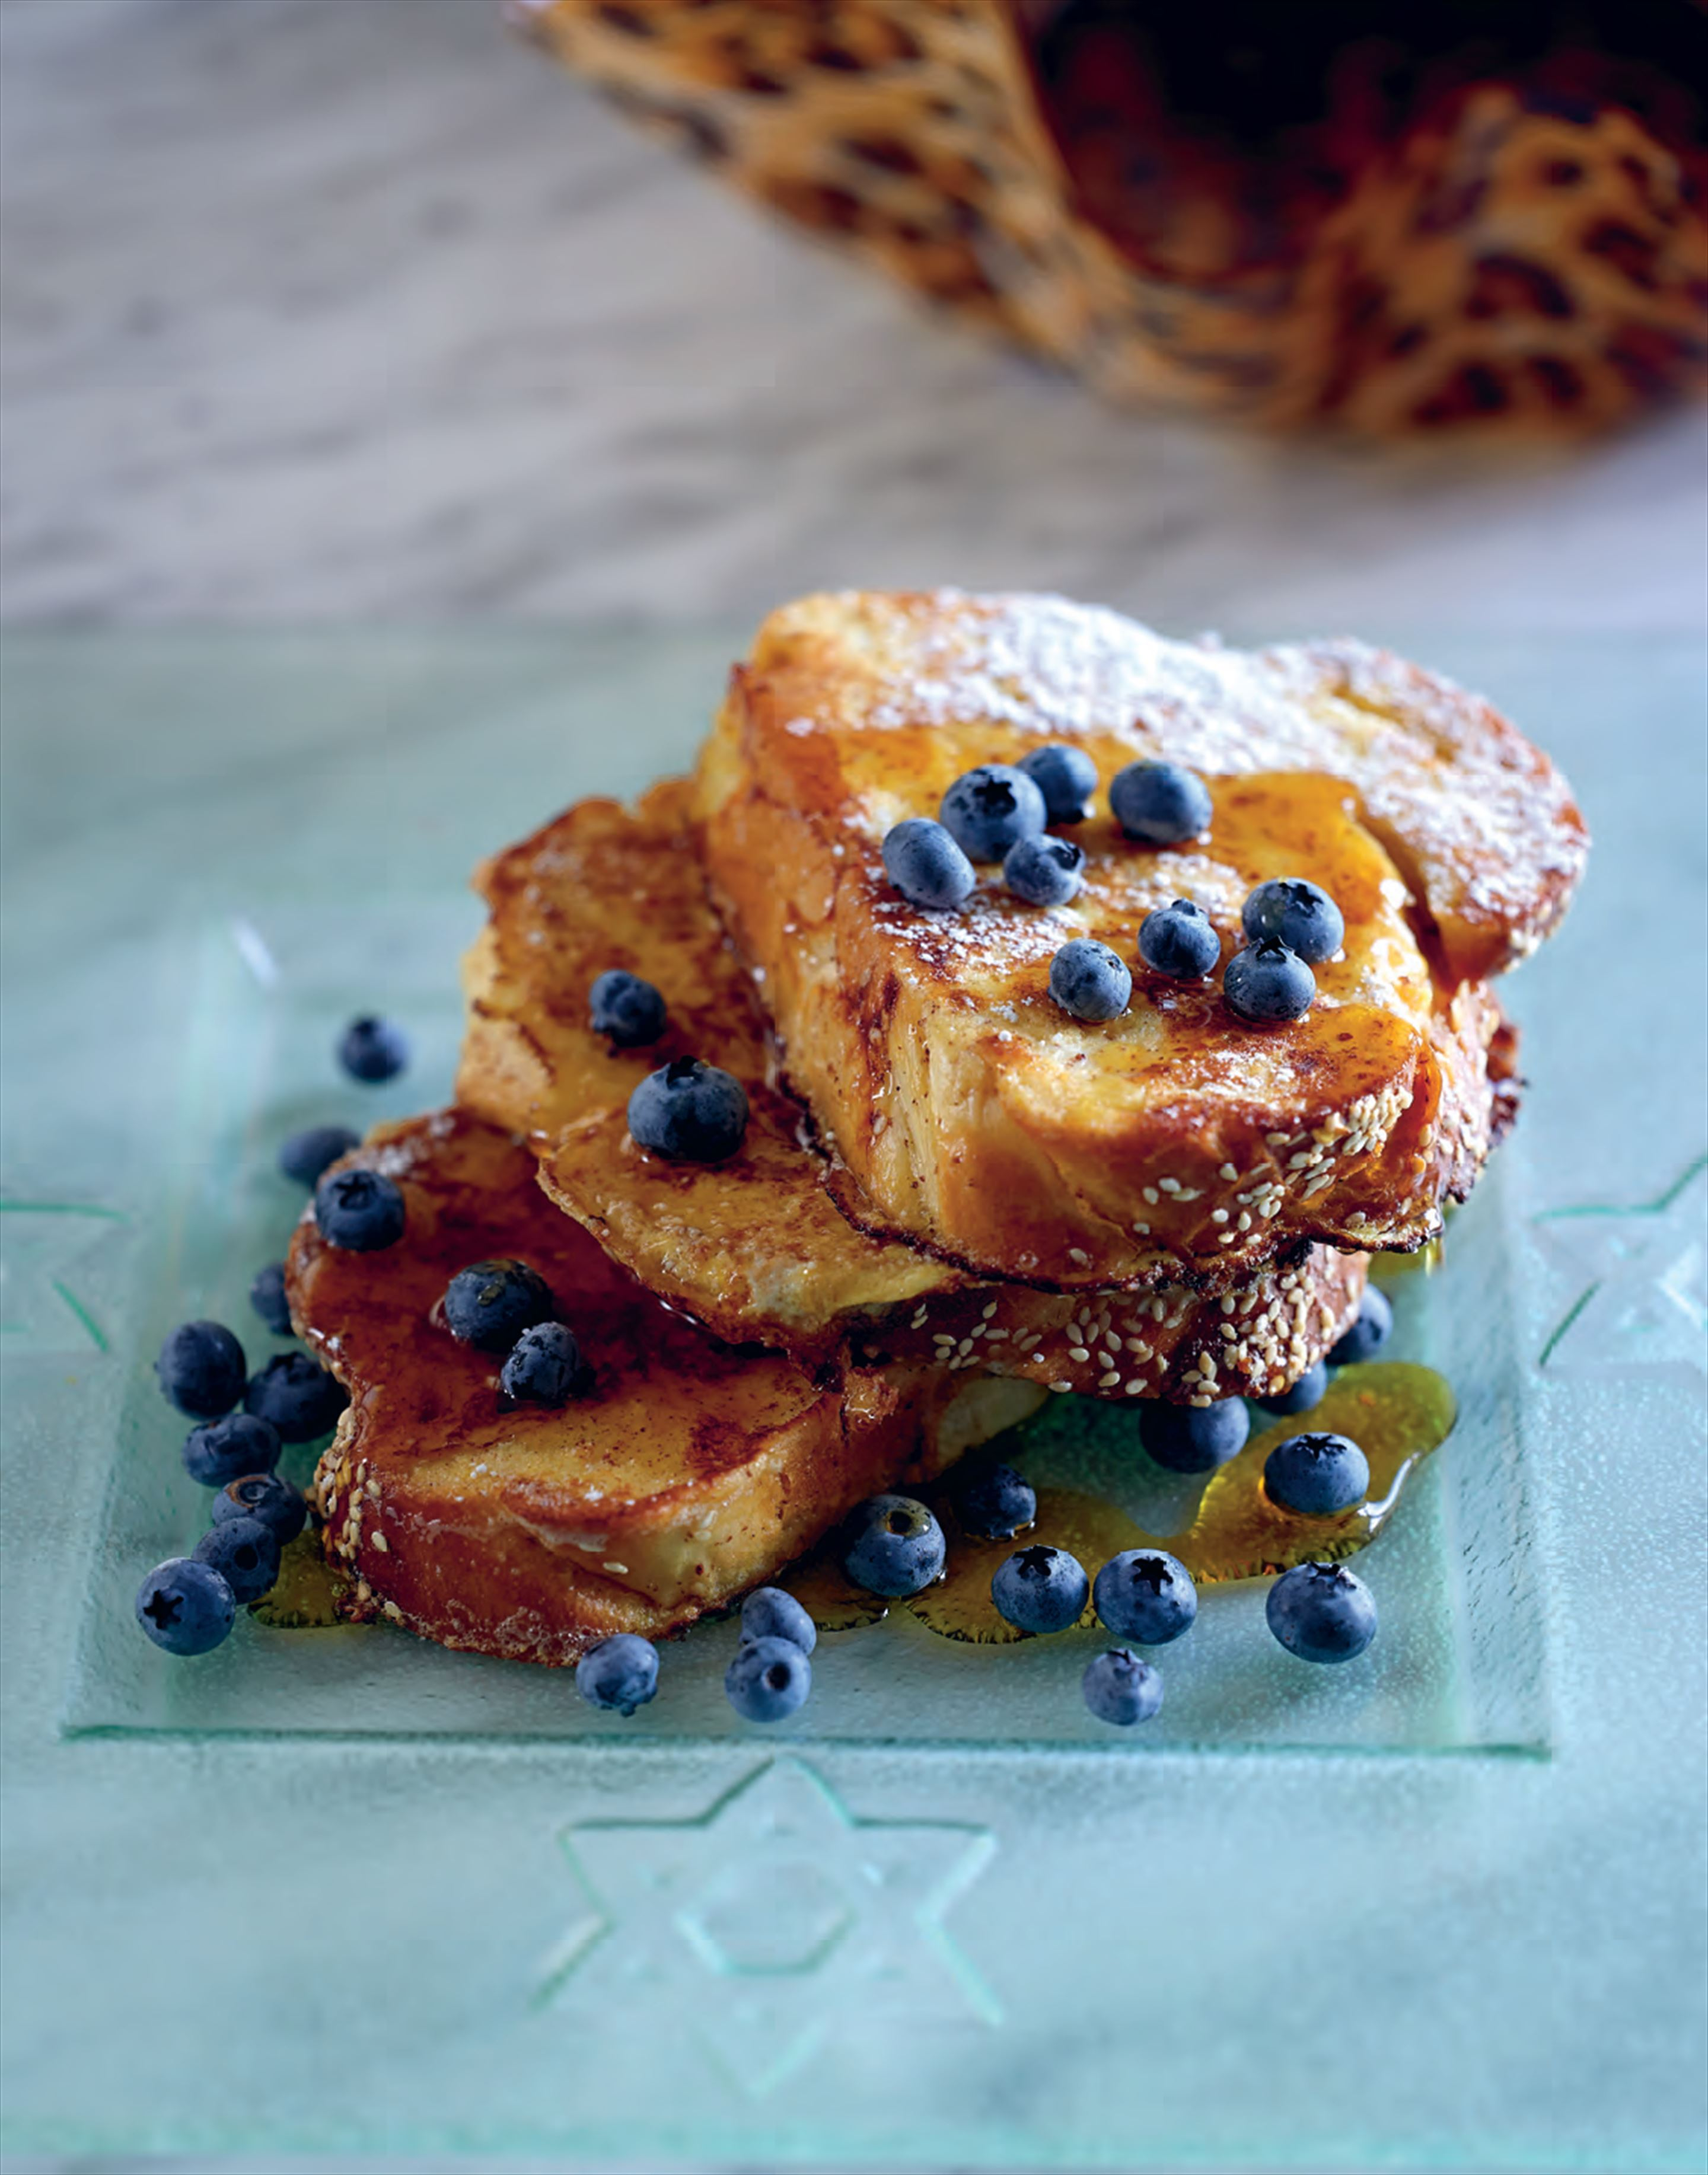 French toast challah with maple syrup and blueberries